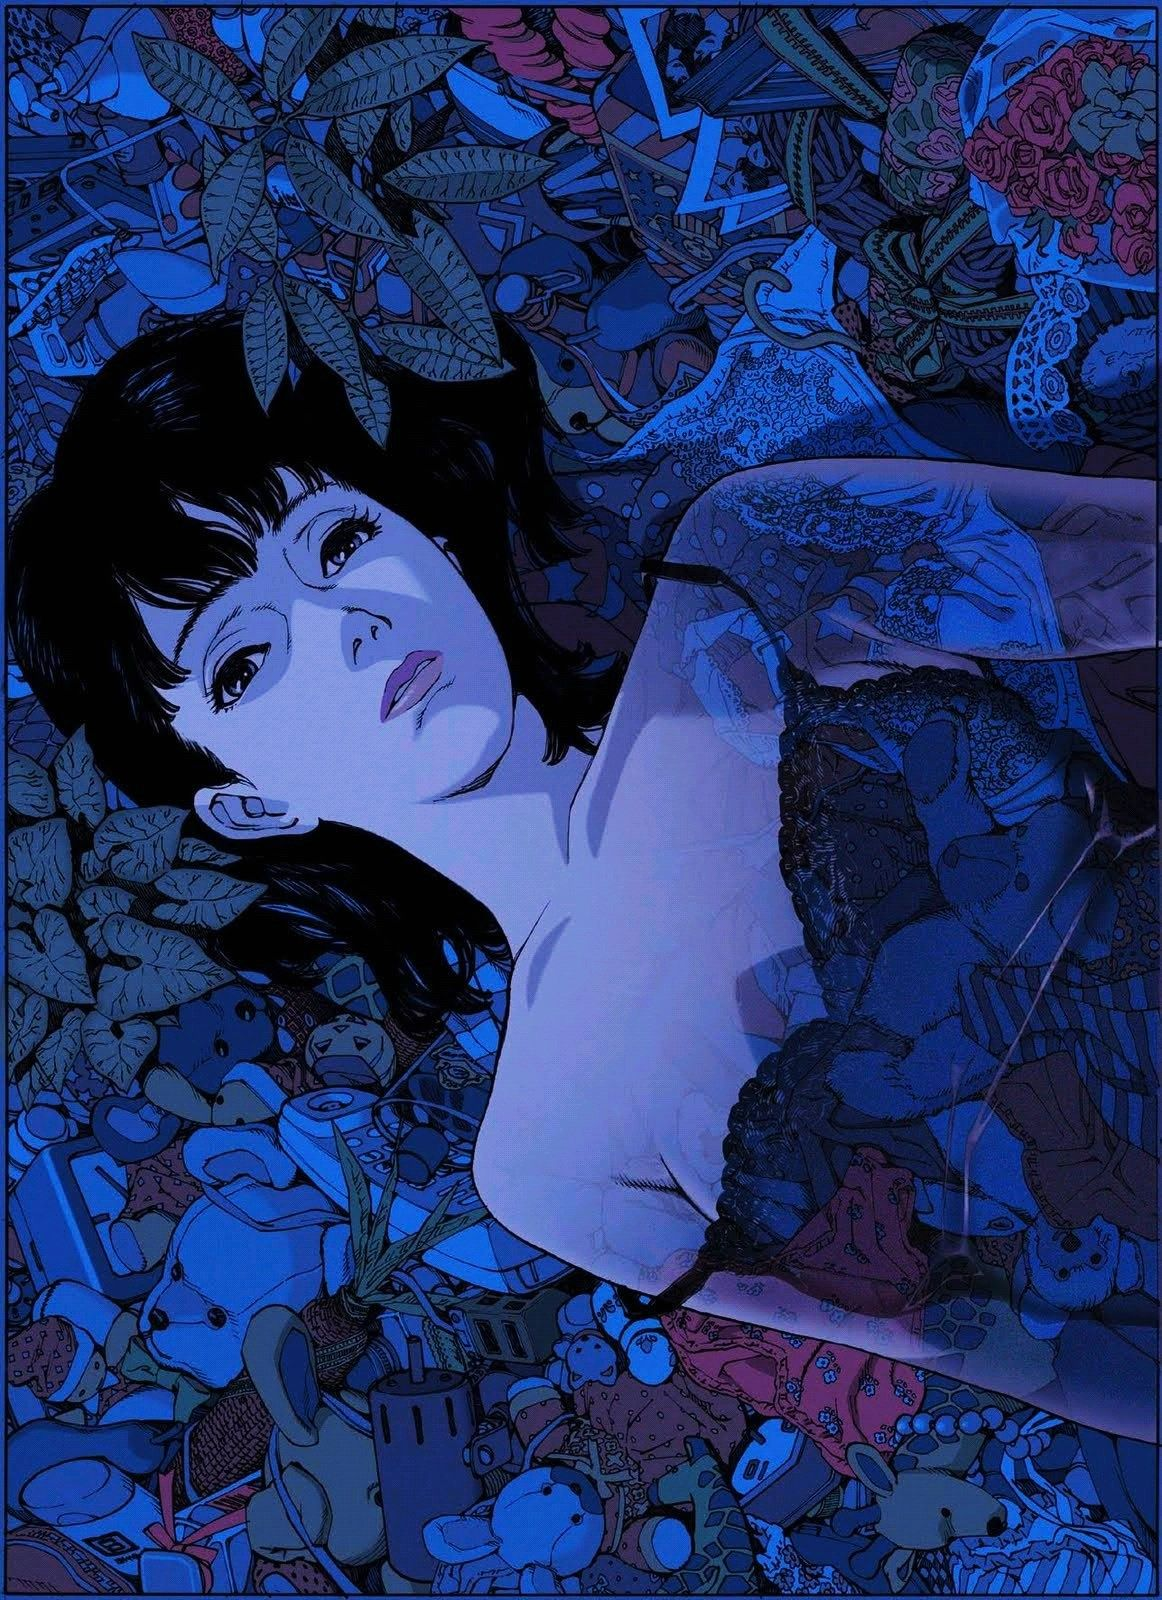 Directed By Satoshi Kon In 2020 Blue Anime Aesthetic Anime Anime Wall Art